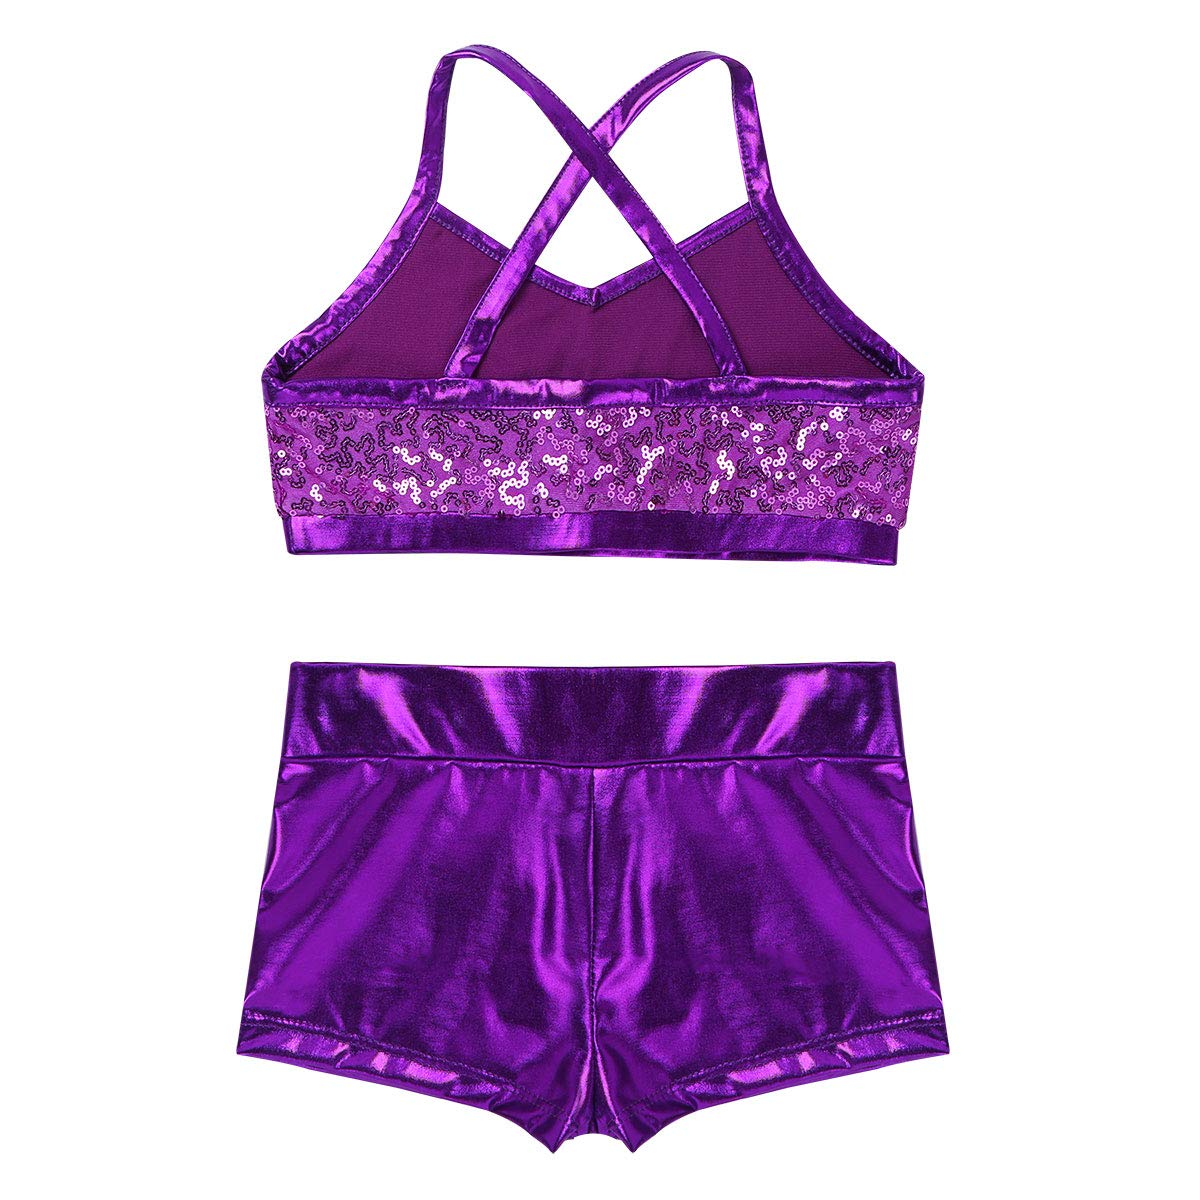 YONGHS Kids Girls Two Piece Tankini Swimsuit Spaghetti Straps Shiny Sequins Tank Top with Bottom Set Ballet Dance Wear